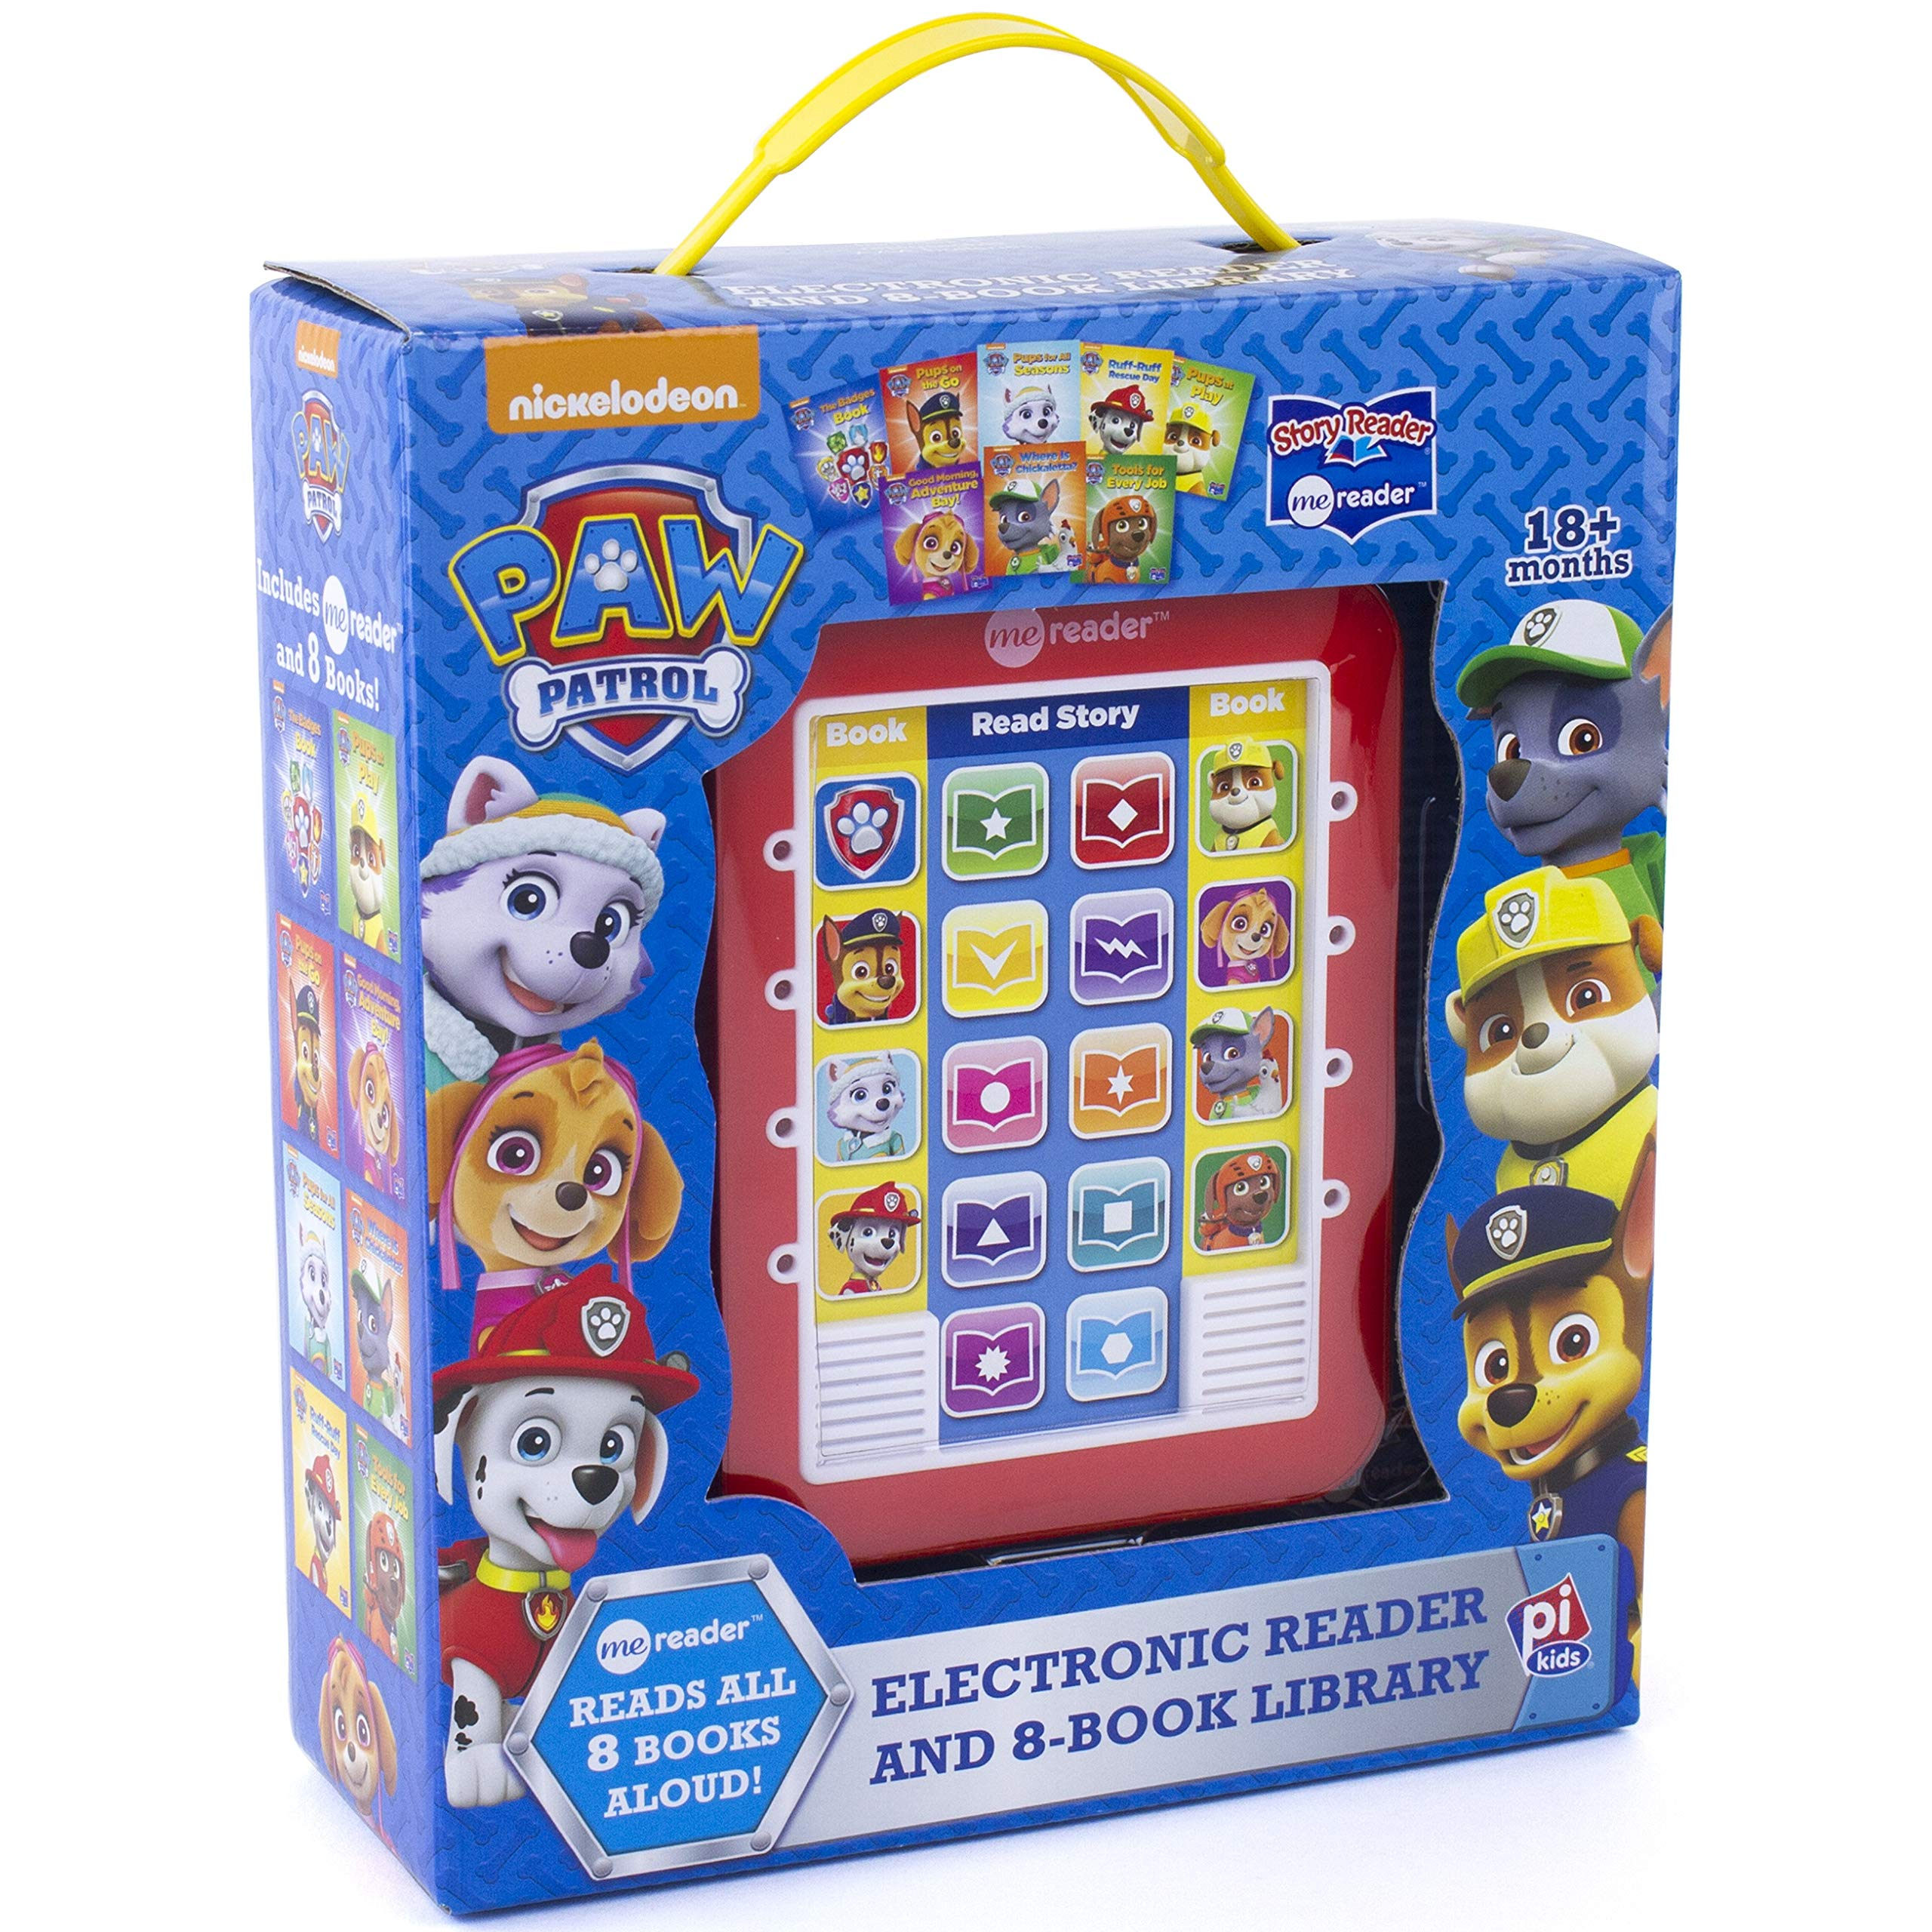 Nickelodeon Paw Patrol Chase, Skye, Marshall, and More! – Me Reader Electronic Reader and 8 Sound Book Library – PI Kids